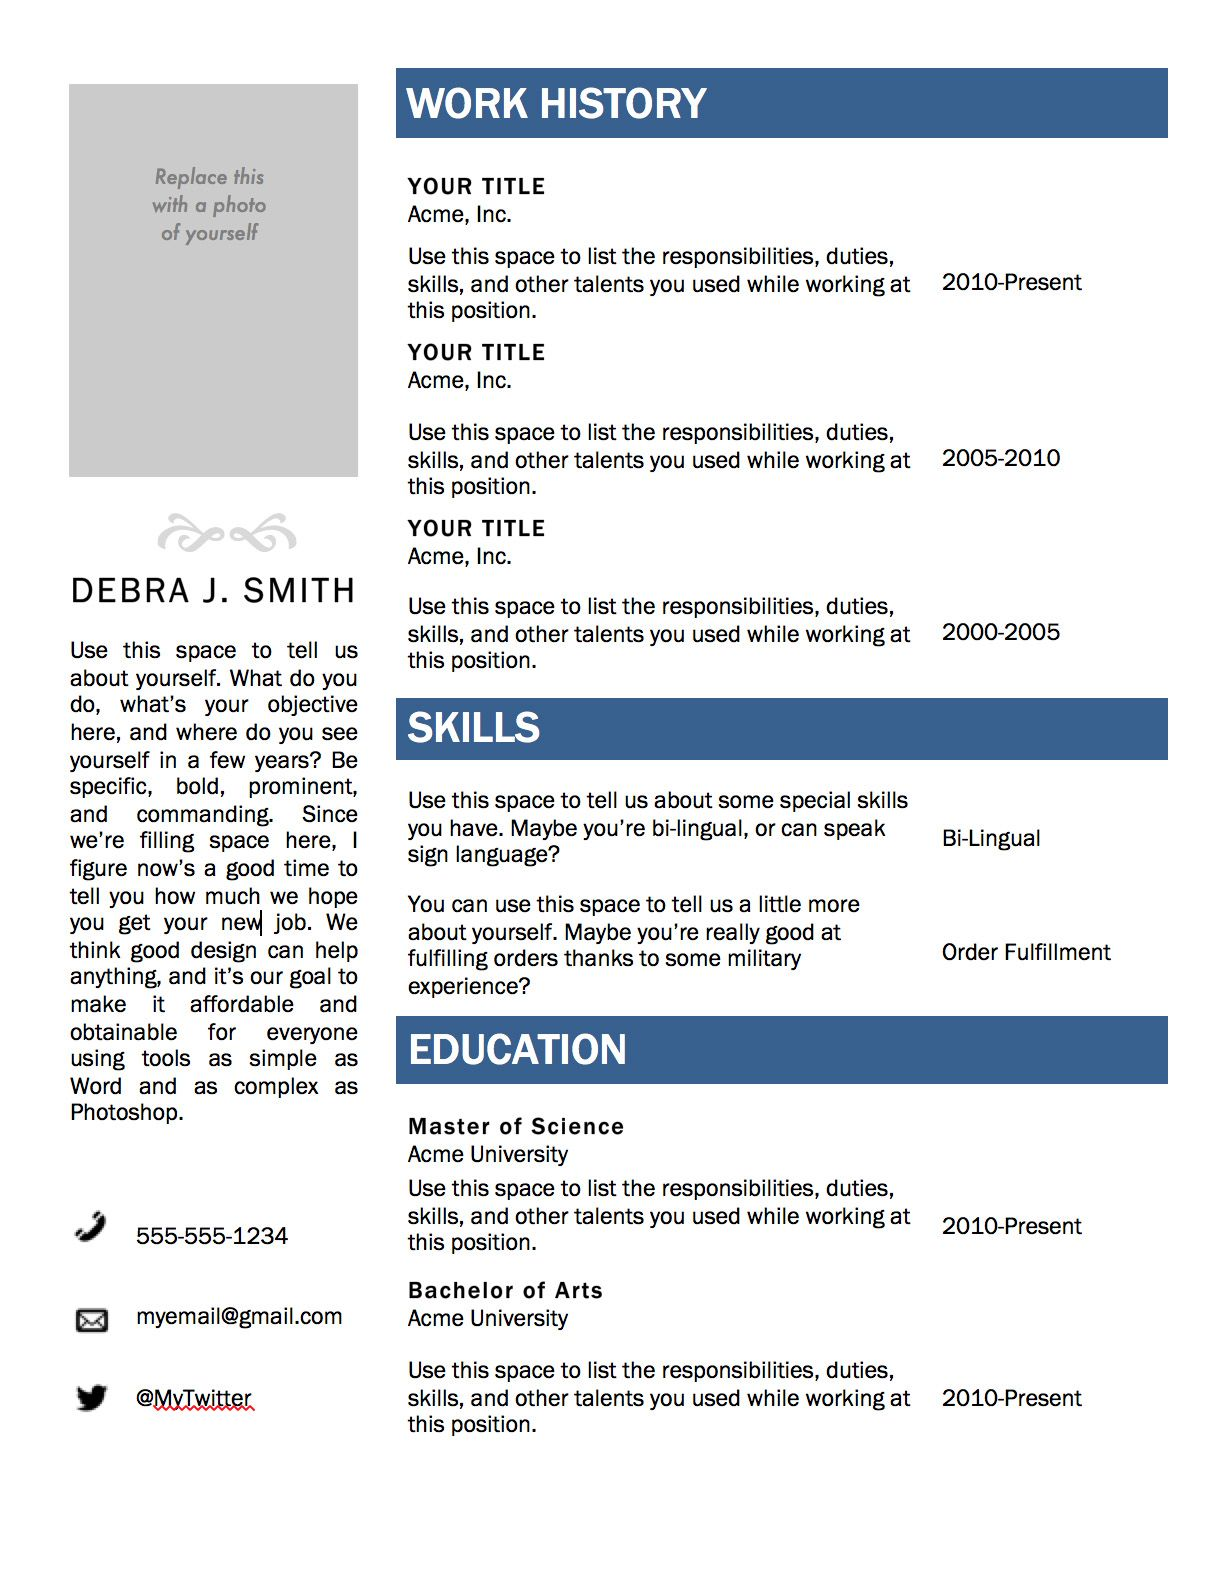 Download Resume Templates Microsoft Word #504 - http://topresume ...